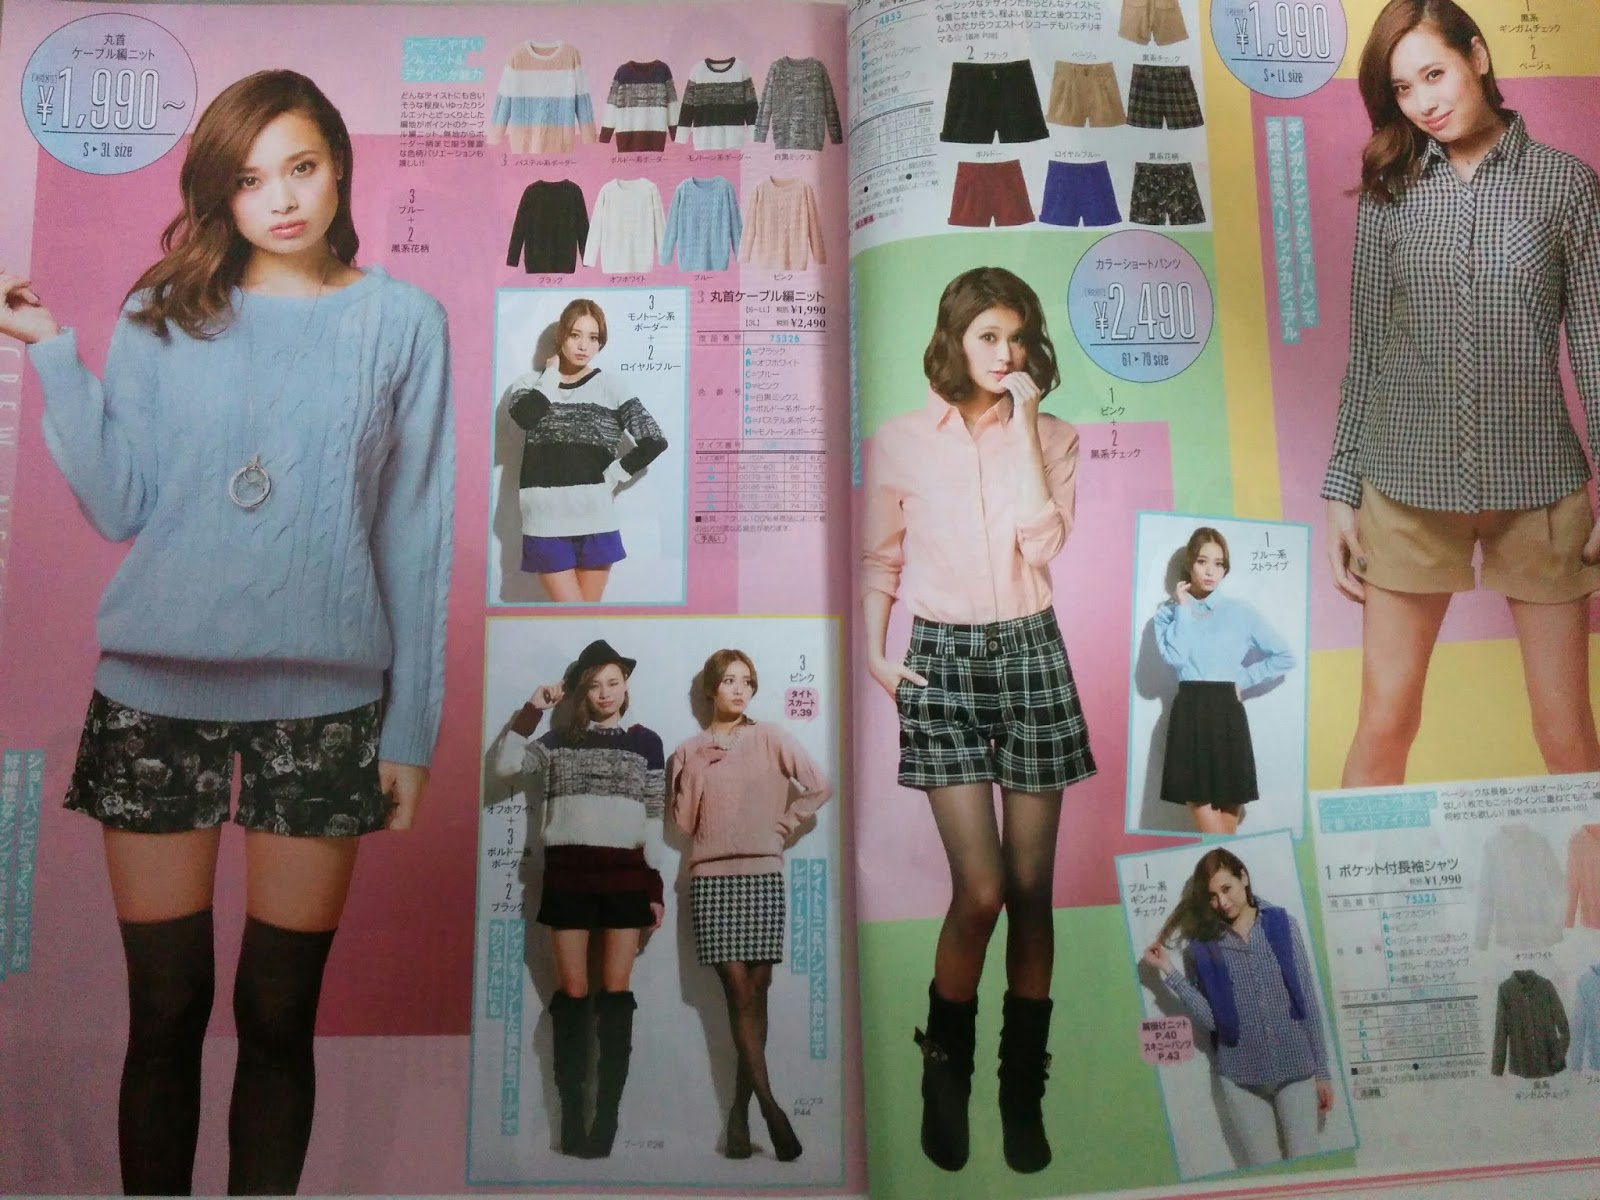 Young Style of Japanese Girls Adult Cute Kawaii Feature in Free Japanese Fashion and Decor Magazine